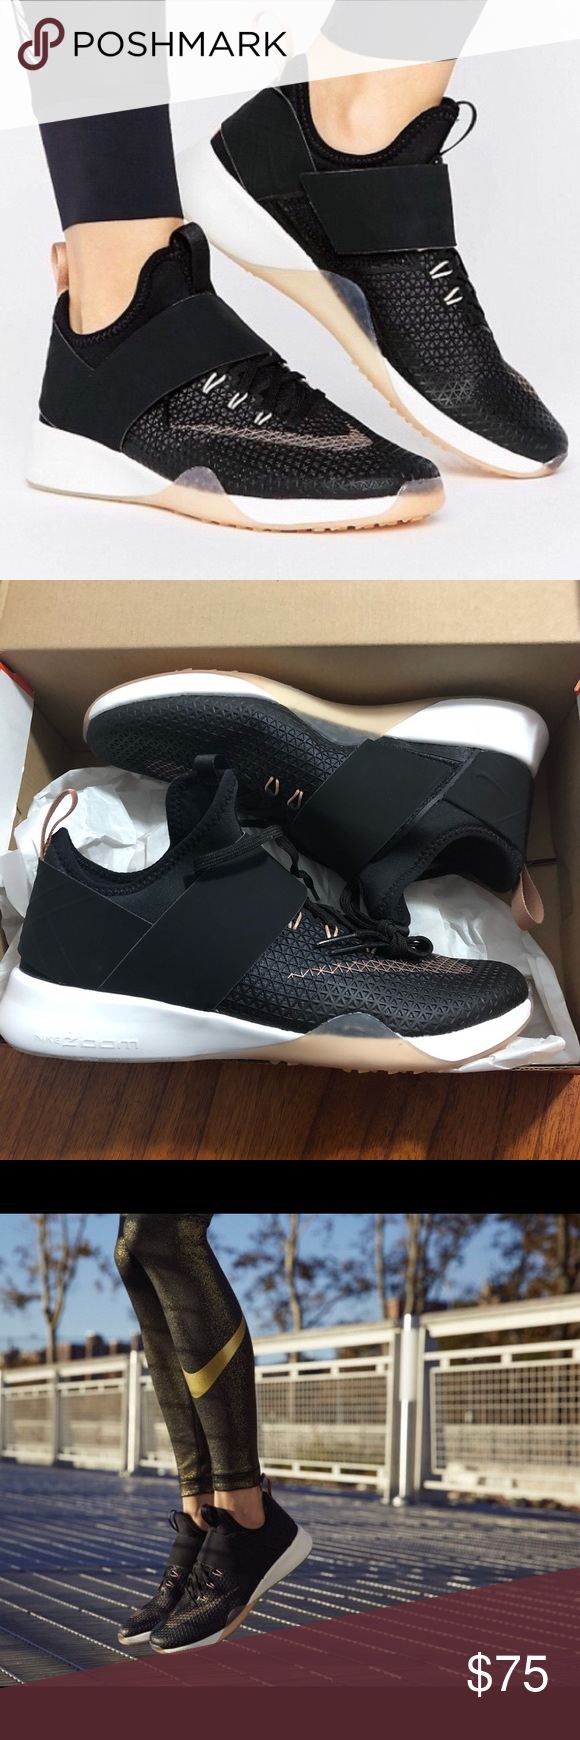 d47a1d5b75189 Nike air zoom strong black rose gold women s 8 NEW womens nike air zoom  strong black   rose gold. New in box Size  8 Bundle fav items for a  personal ...